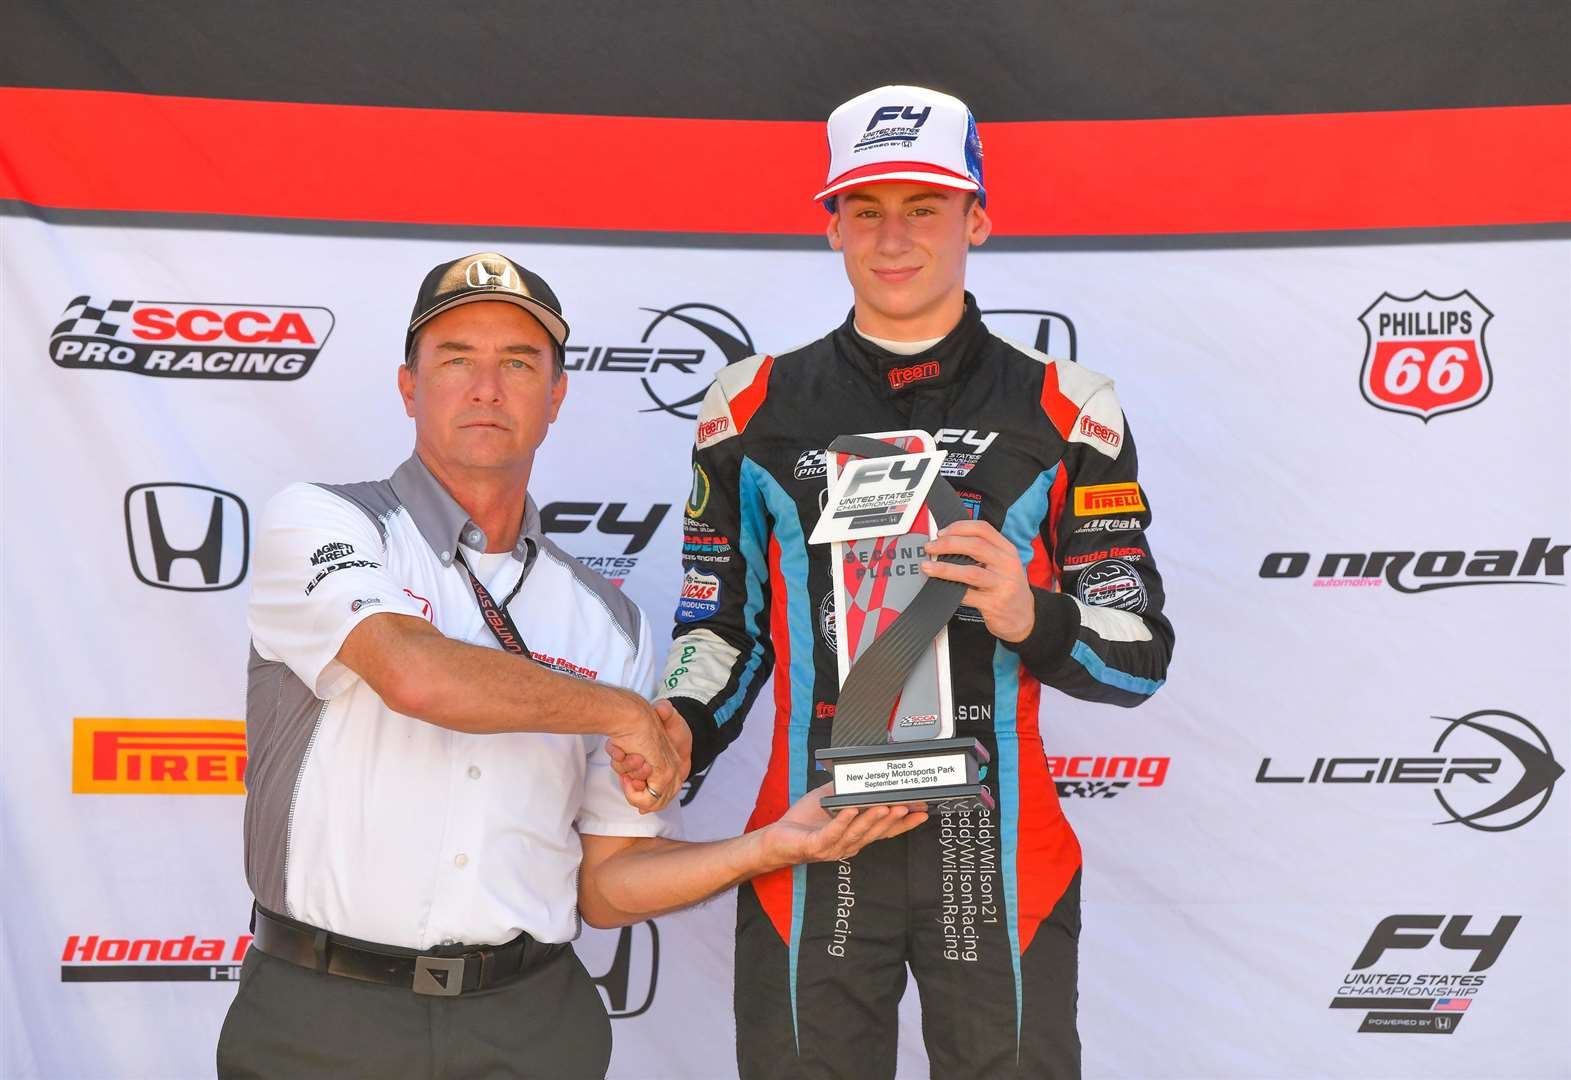 MOTORSPORT: Teddy takes qualifying record in another formidable performance